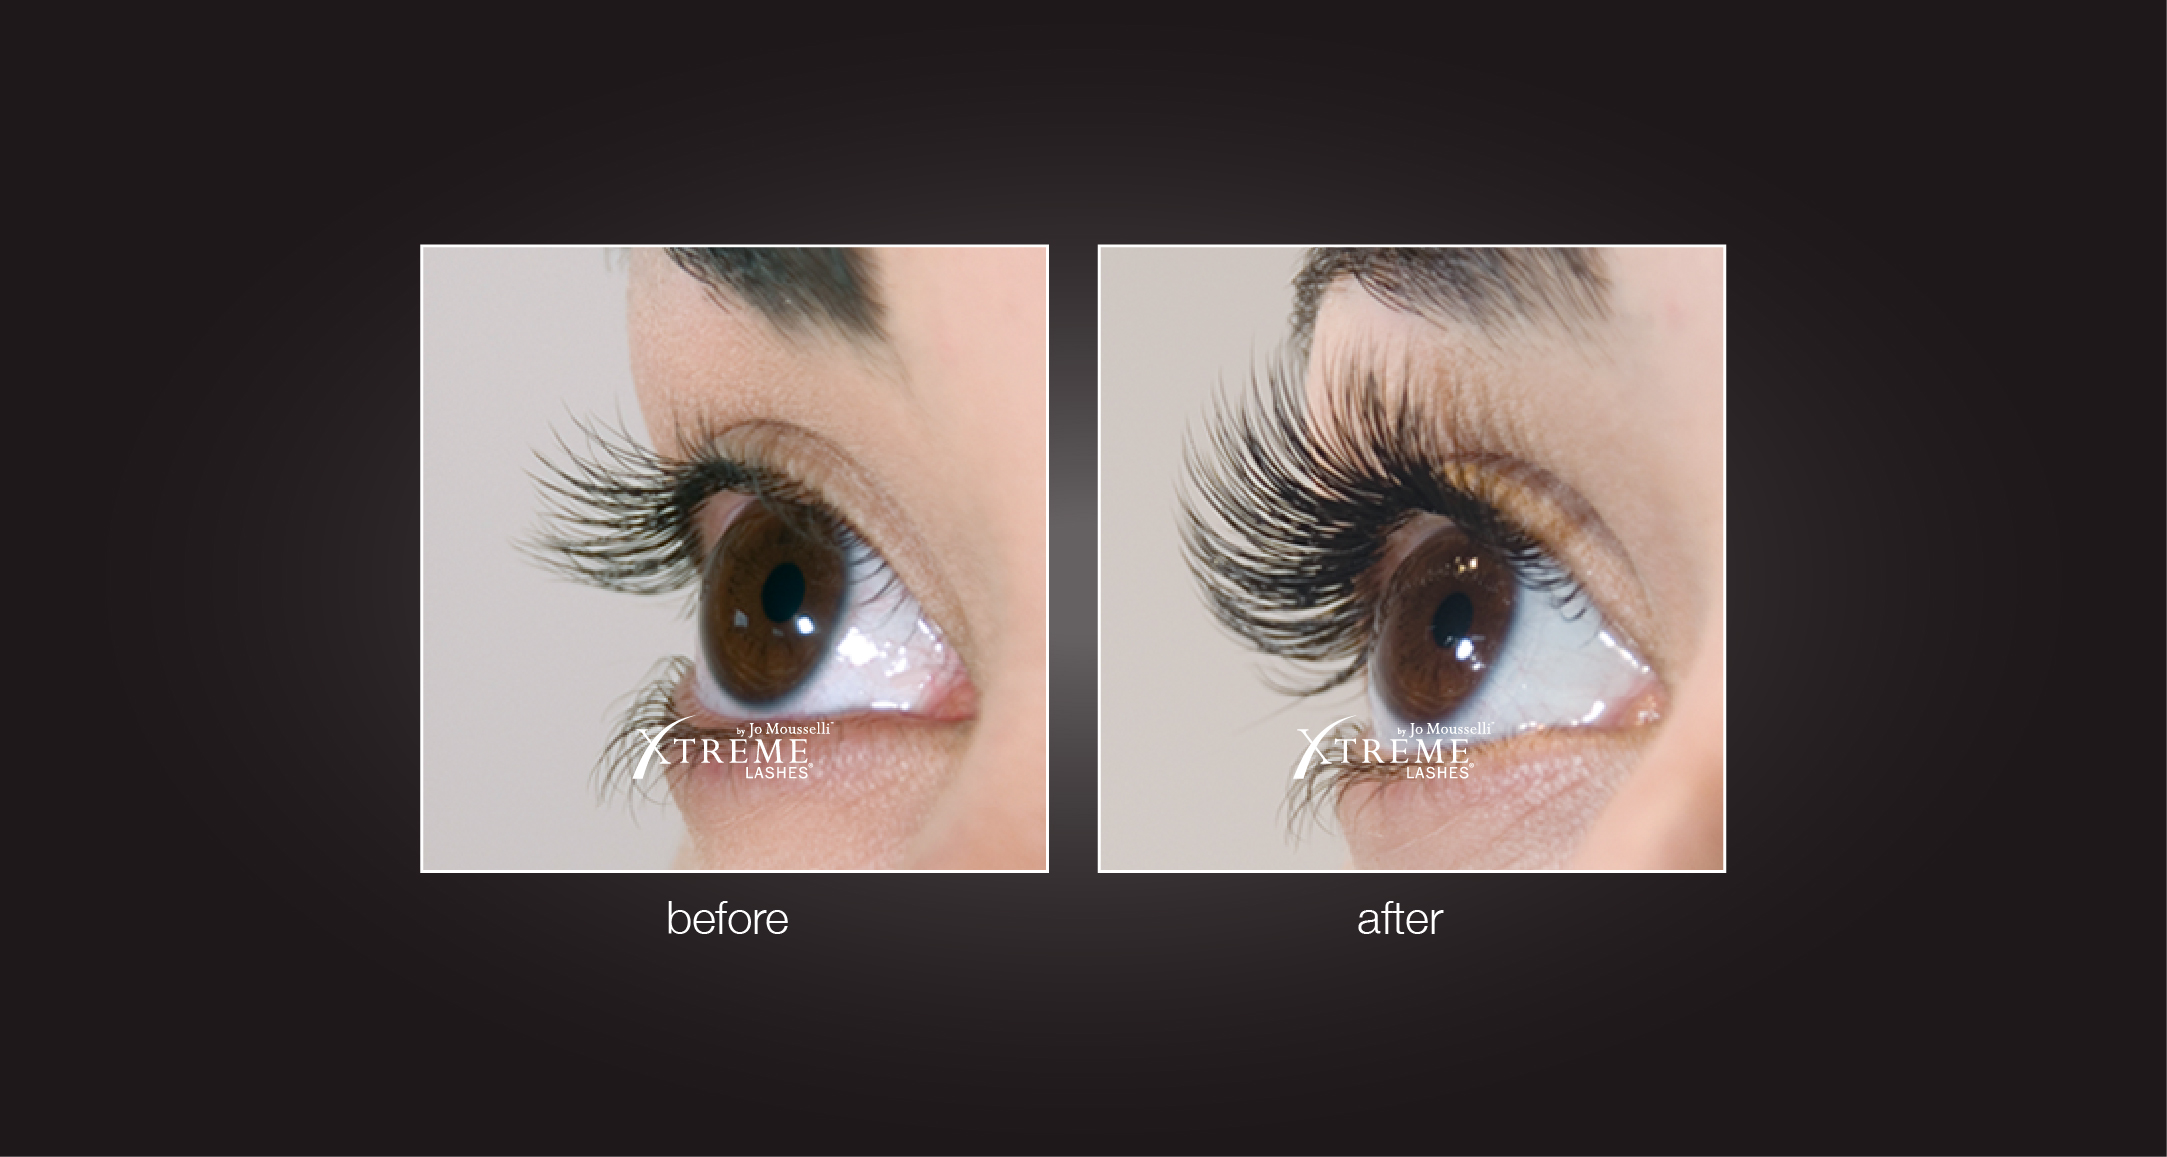 2-Eyelash-Extensions-Before-After-Natural.jpg